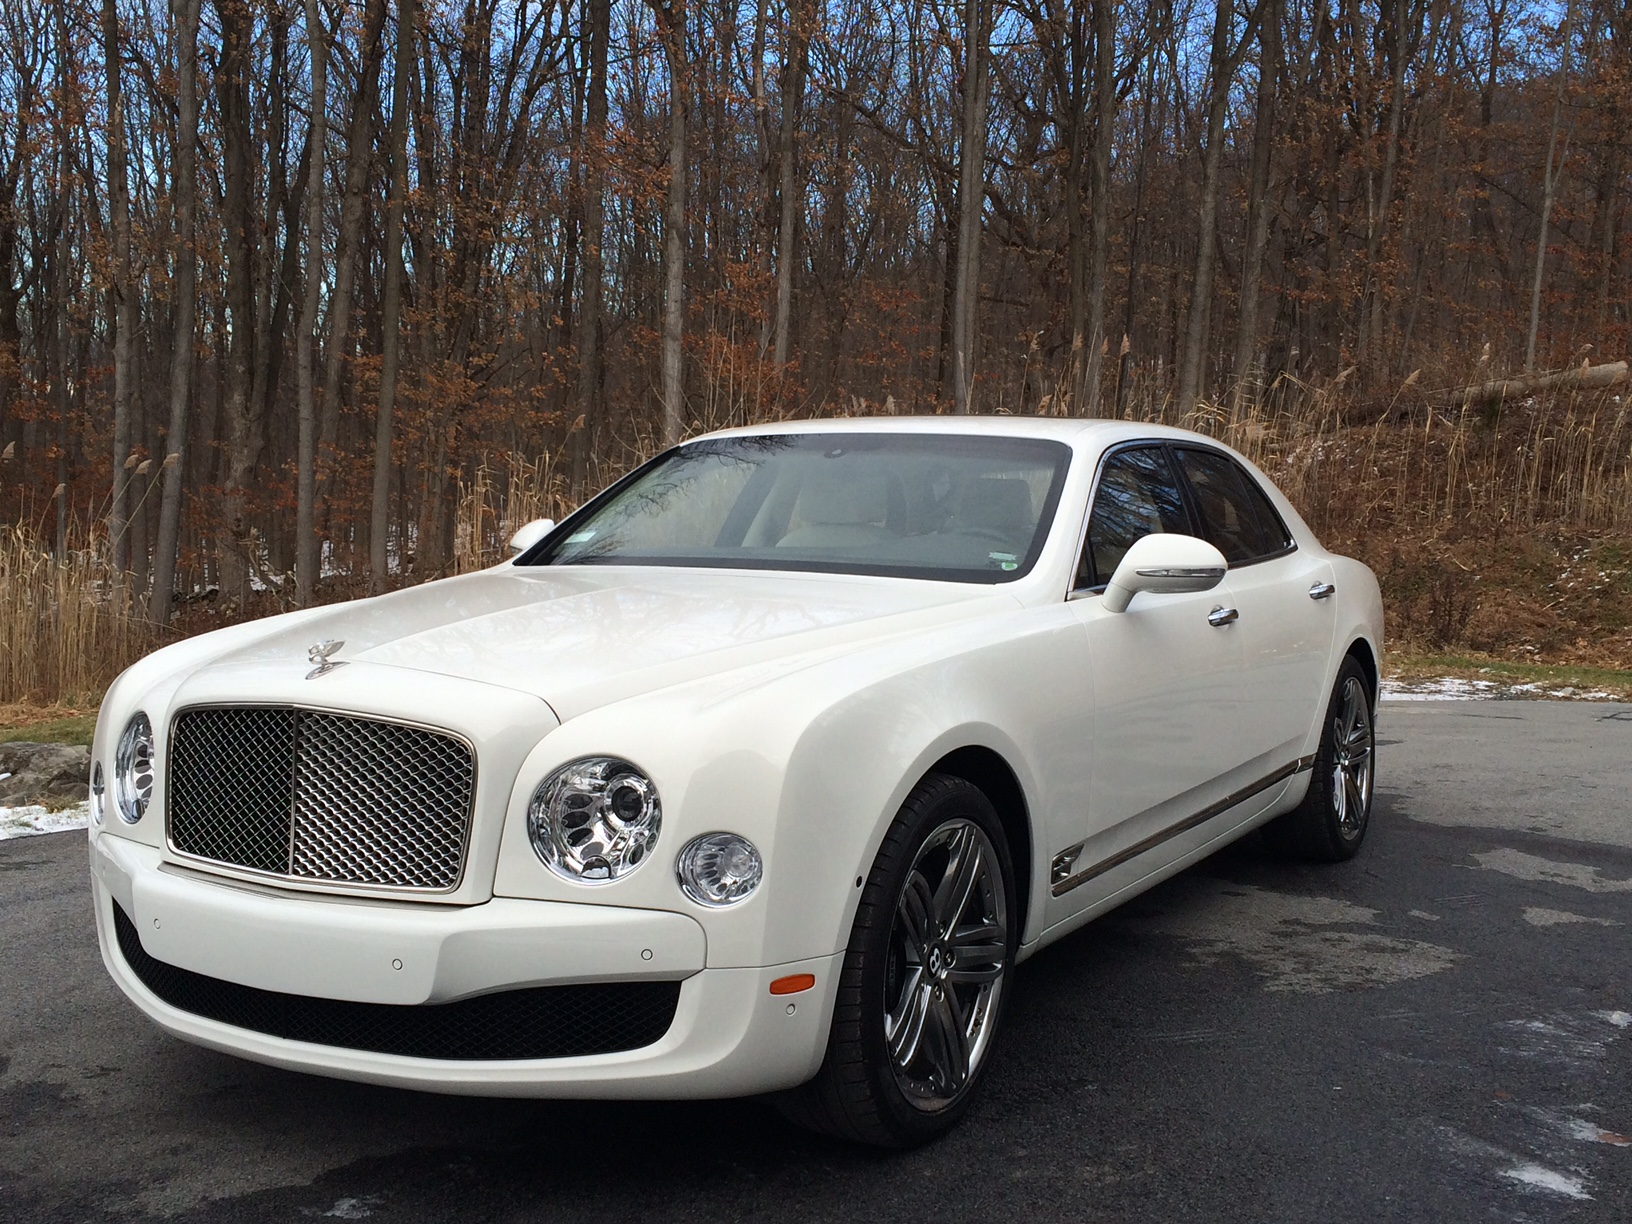 White Bentley Mulsanne Reliance Ny Group